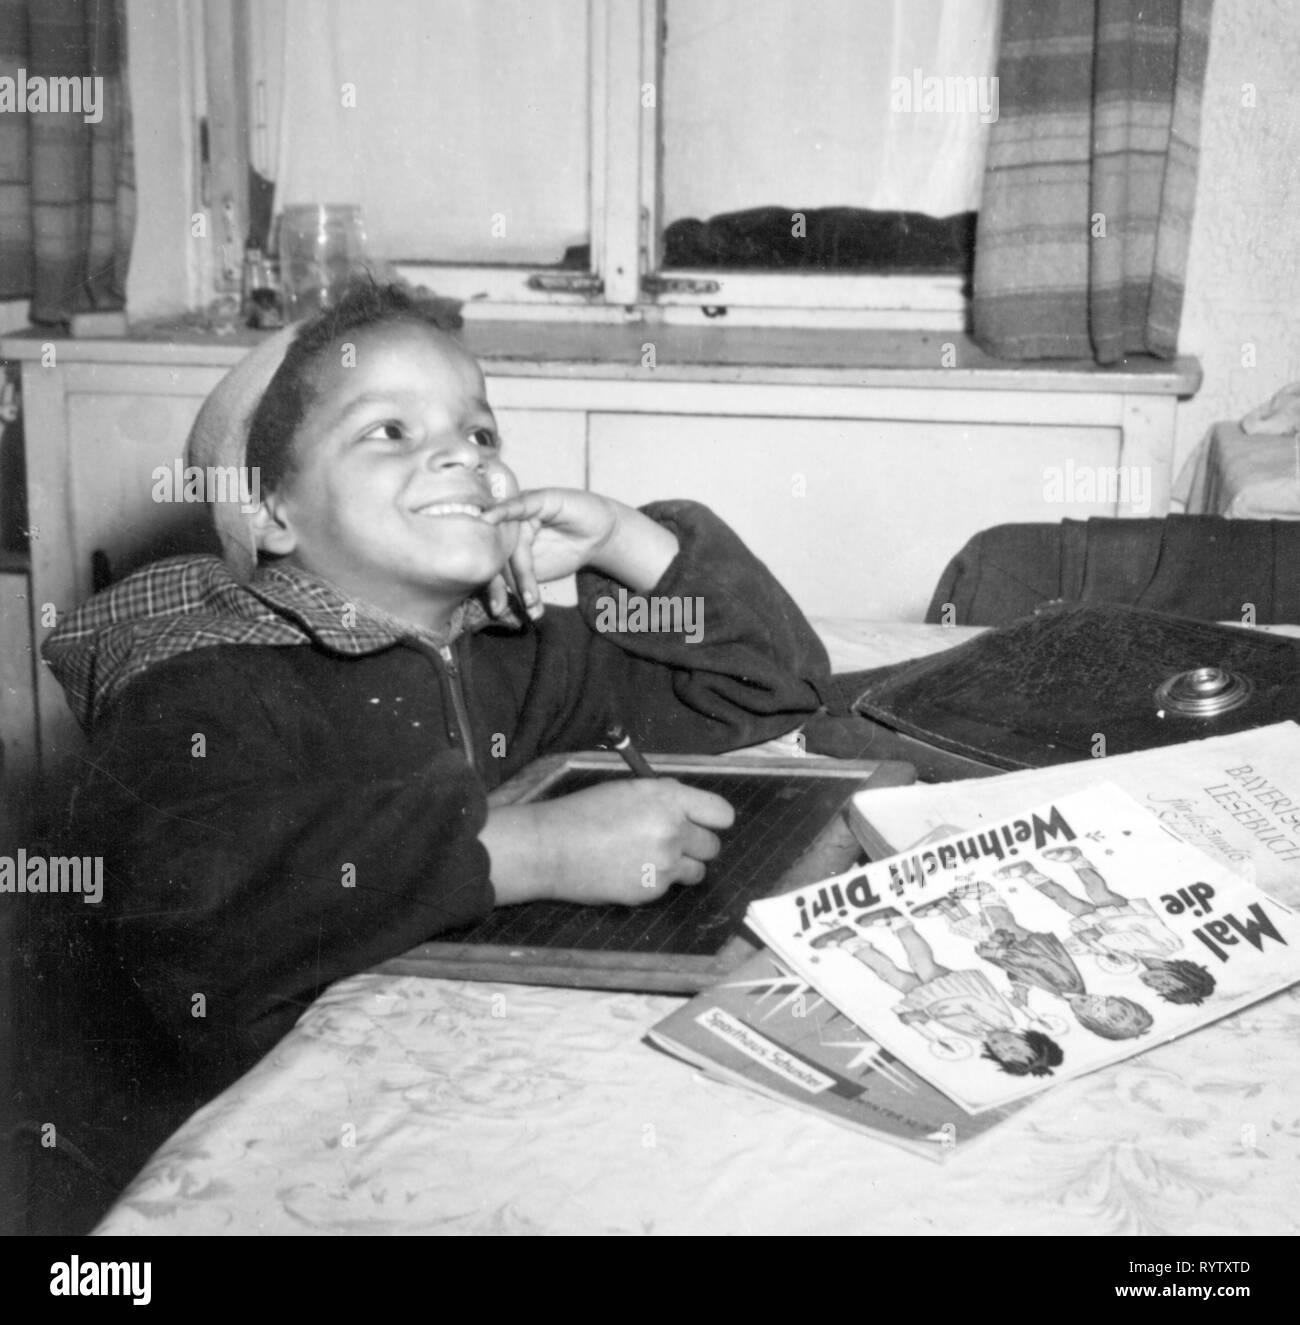 Christmas, handicrafts / painting, black girl painting Christmas images at table, Munich, 1950s, Additional-Rights-Clearance-Info-Not-Available - Stock Image